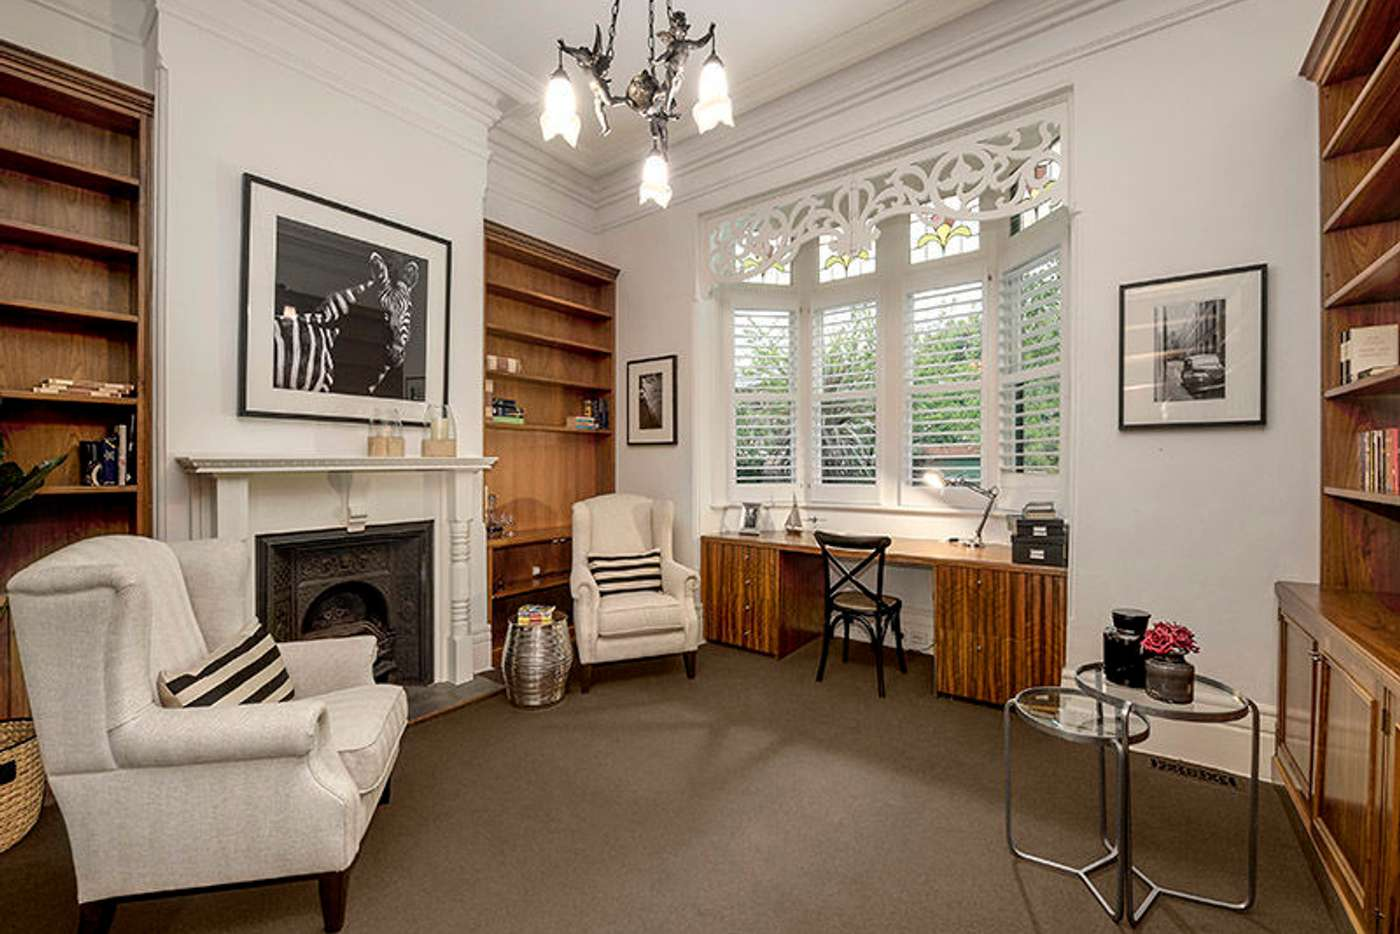 Sixth view of Homely house listing, 3 Talbot Avenue, St Kilda East VIC 3183